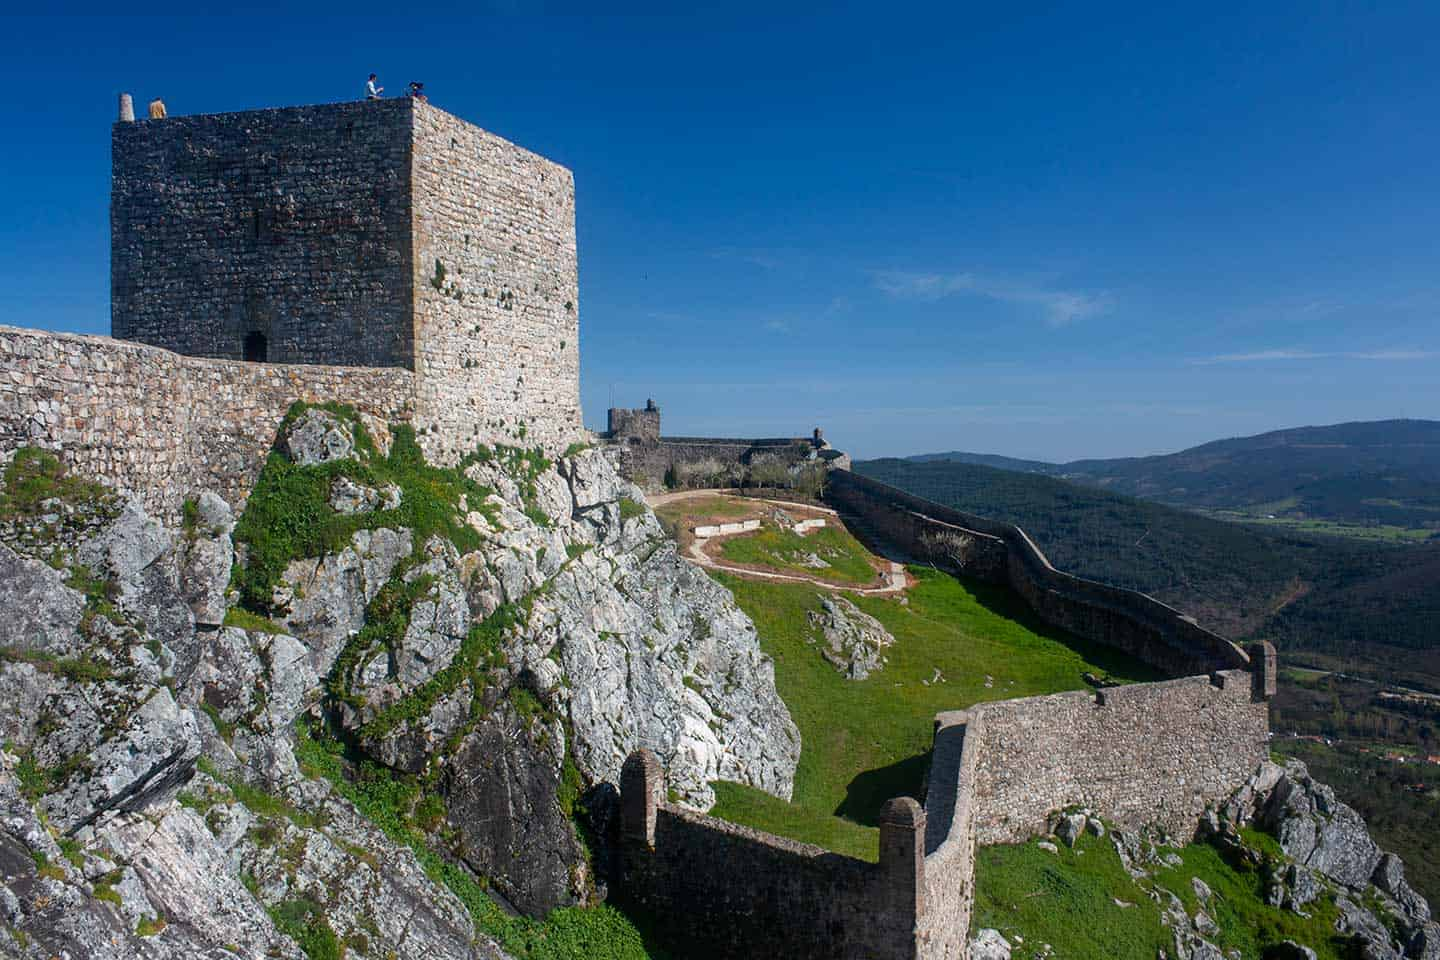 Image of the castle in Marvao Portugal